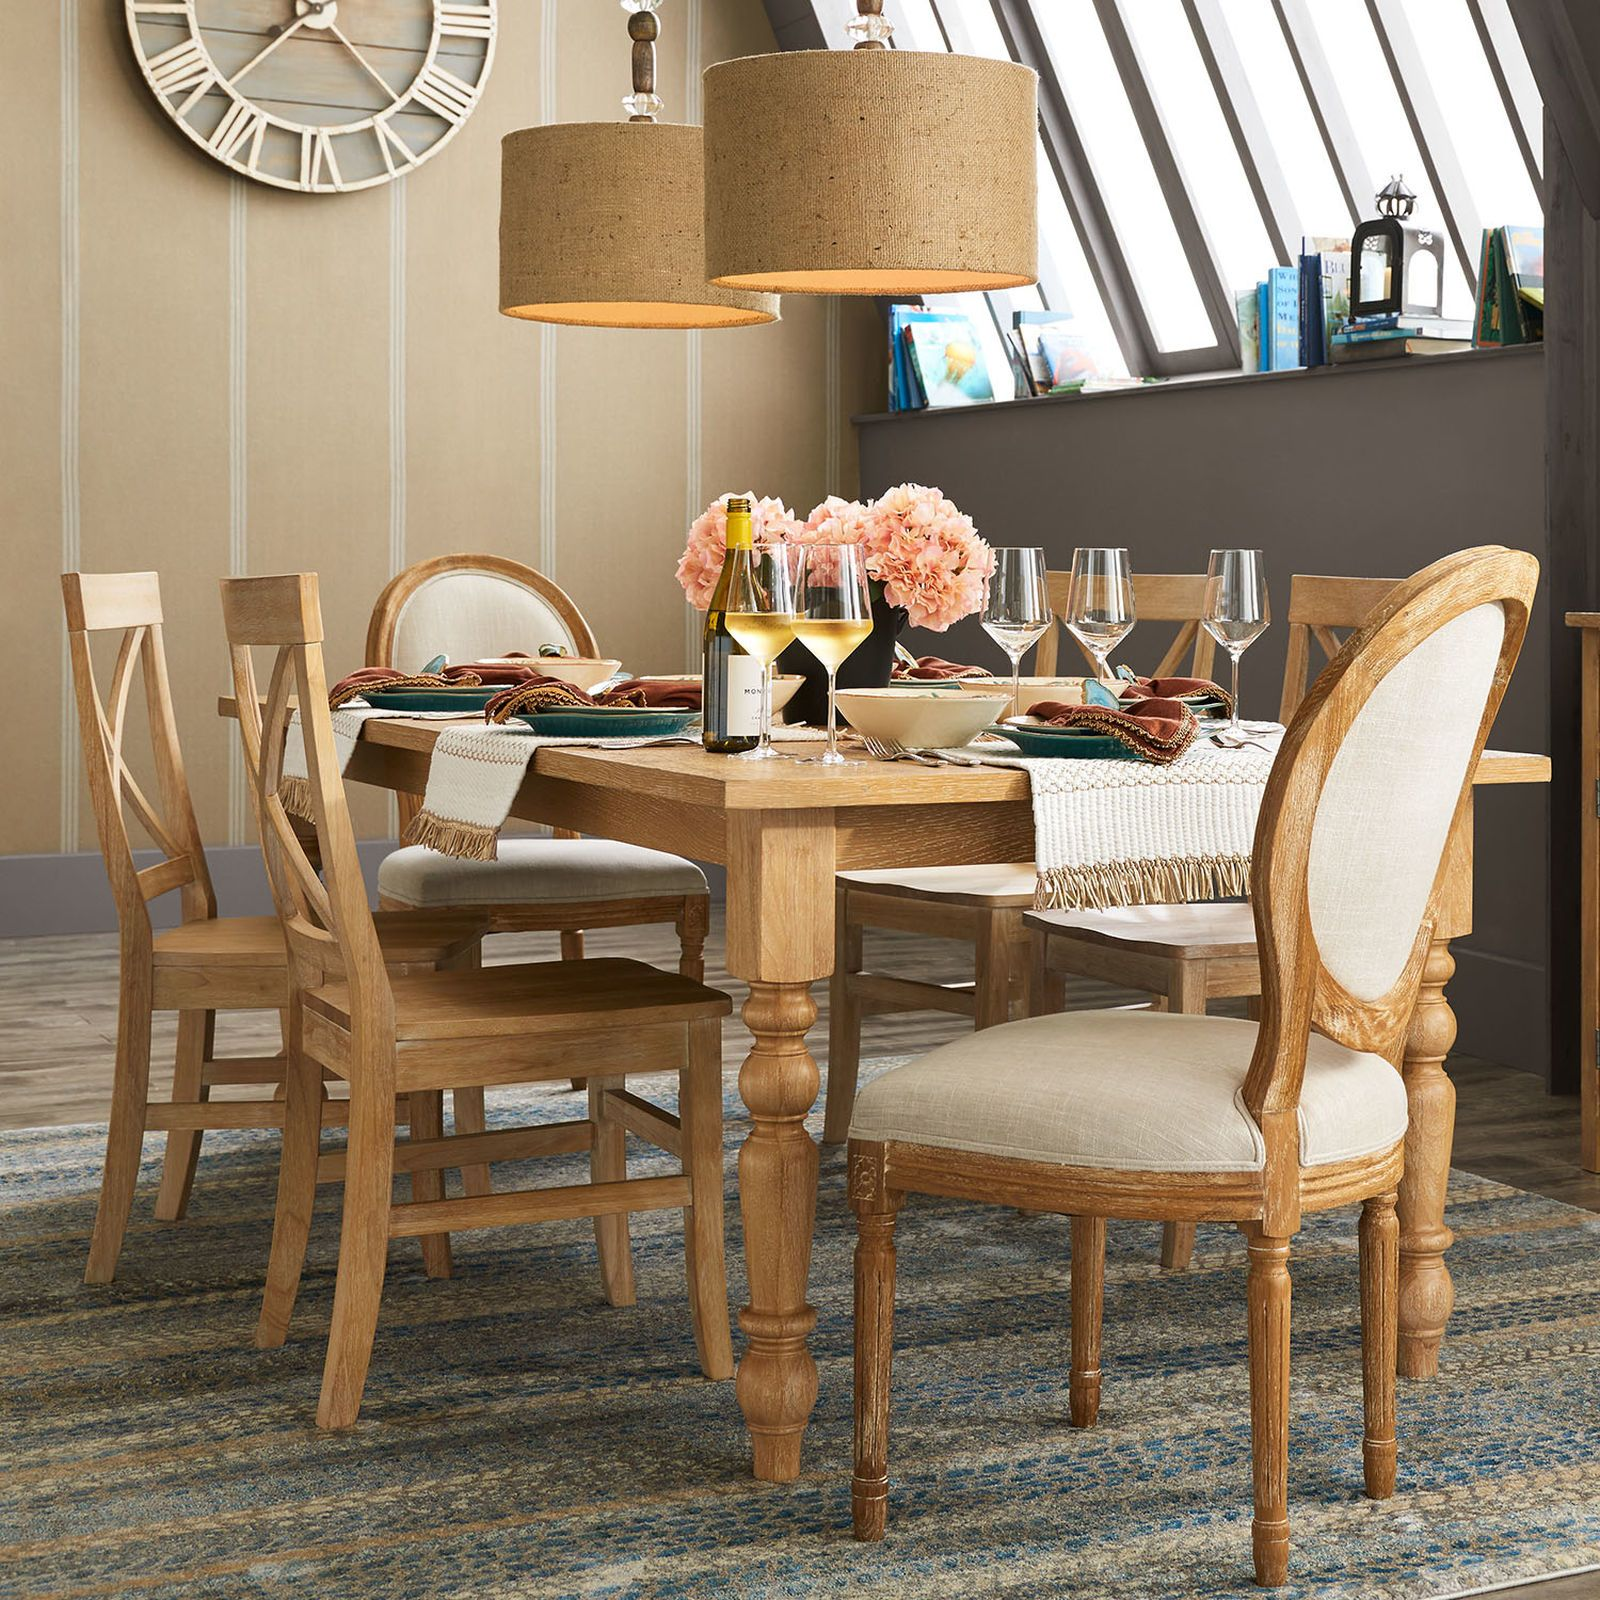 An Intriguing Mix Of Textures And Materials Gives Our Pendant Light An Interesting Style Wood And Glass Beads Lea Dining Table Legs Dining Table Dining Chairs